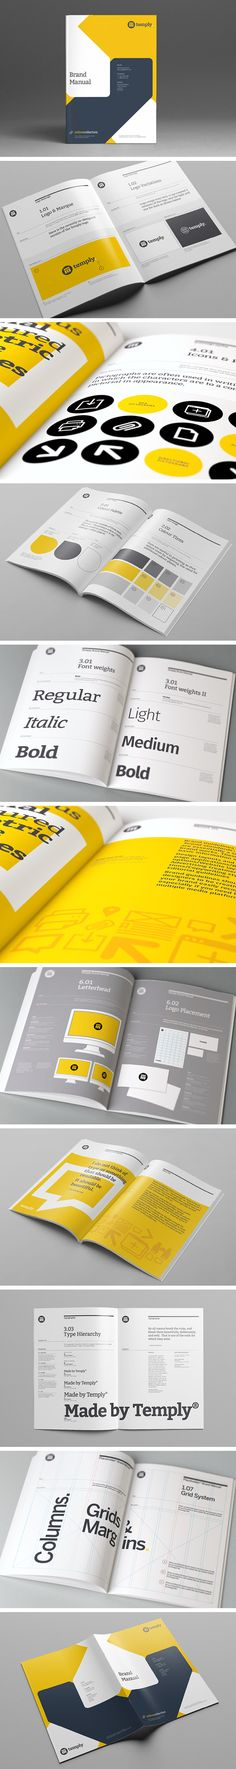 Brand Manual Template by Temp ly